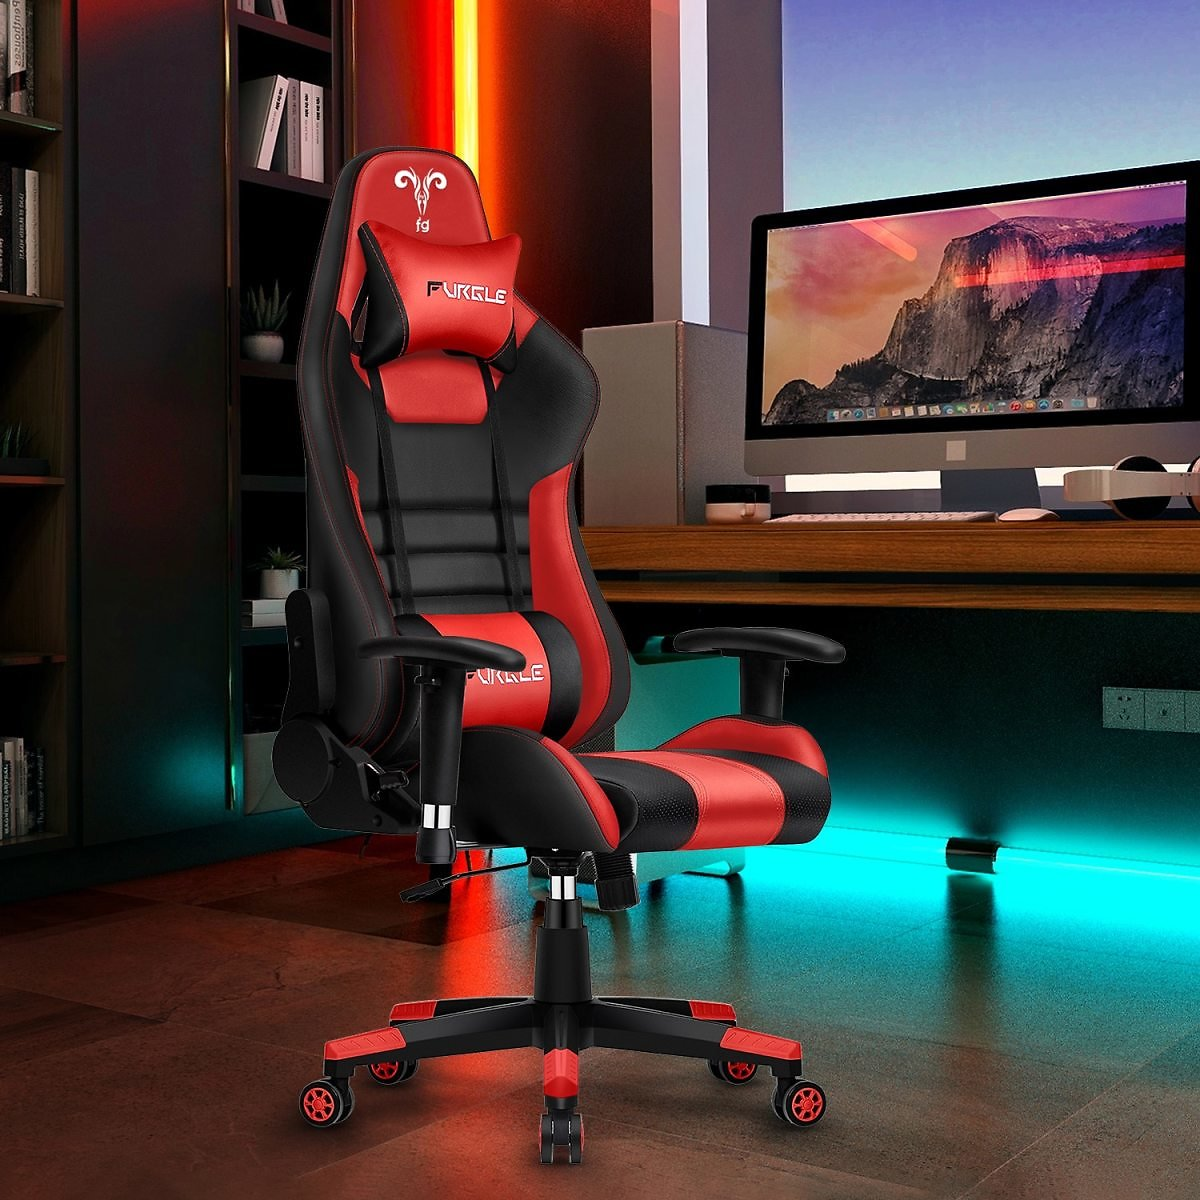 US $133.39 | 42% OFF | Furgle Gaming Office Chairs 180 Degree Reclining Computer Gaming Chair